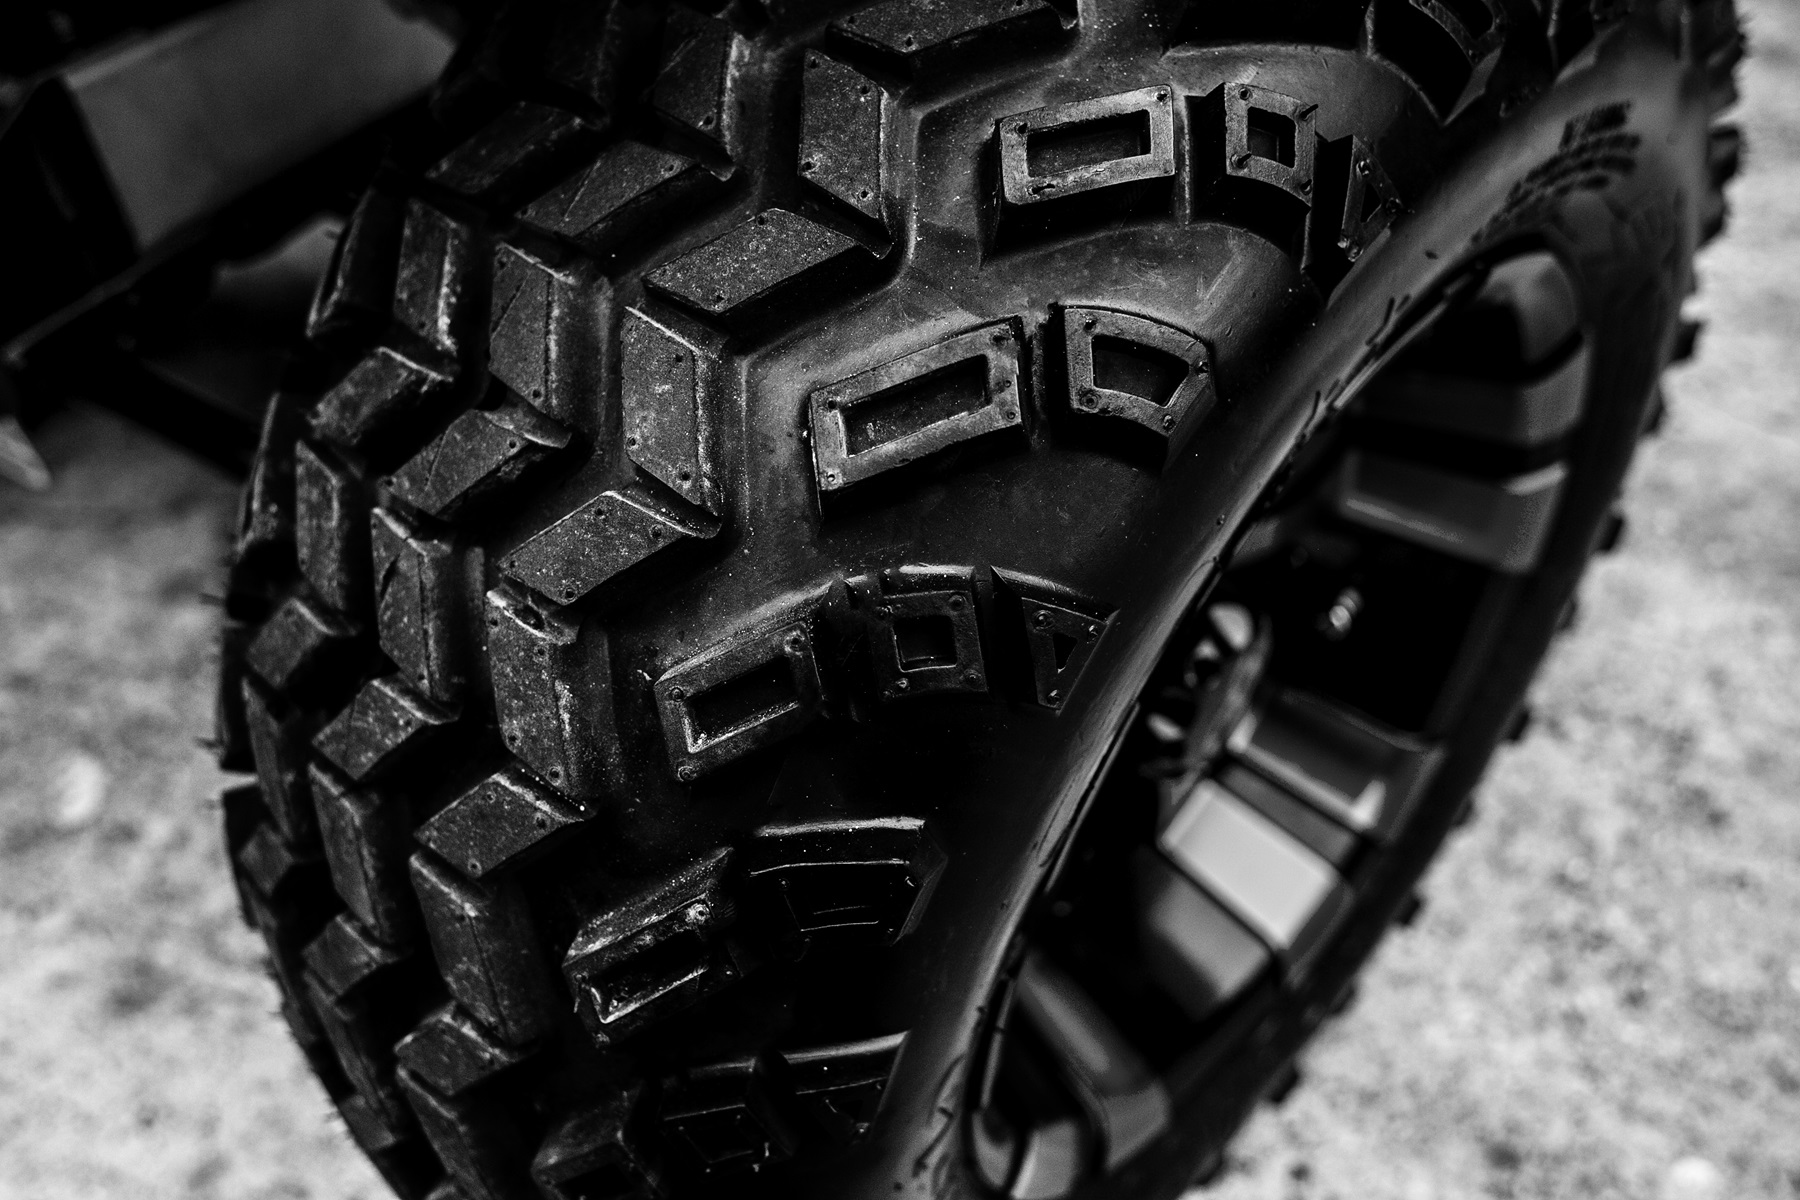 golf cart accessories: new tires and rims